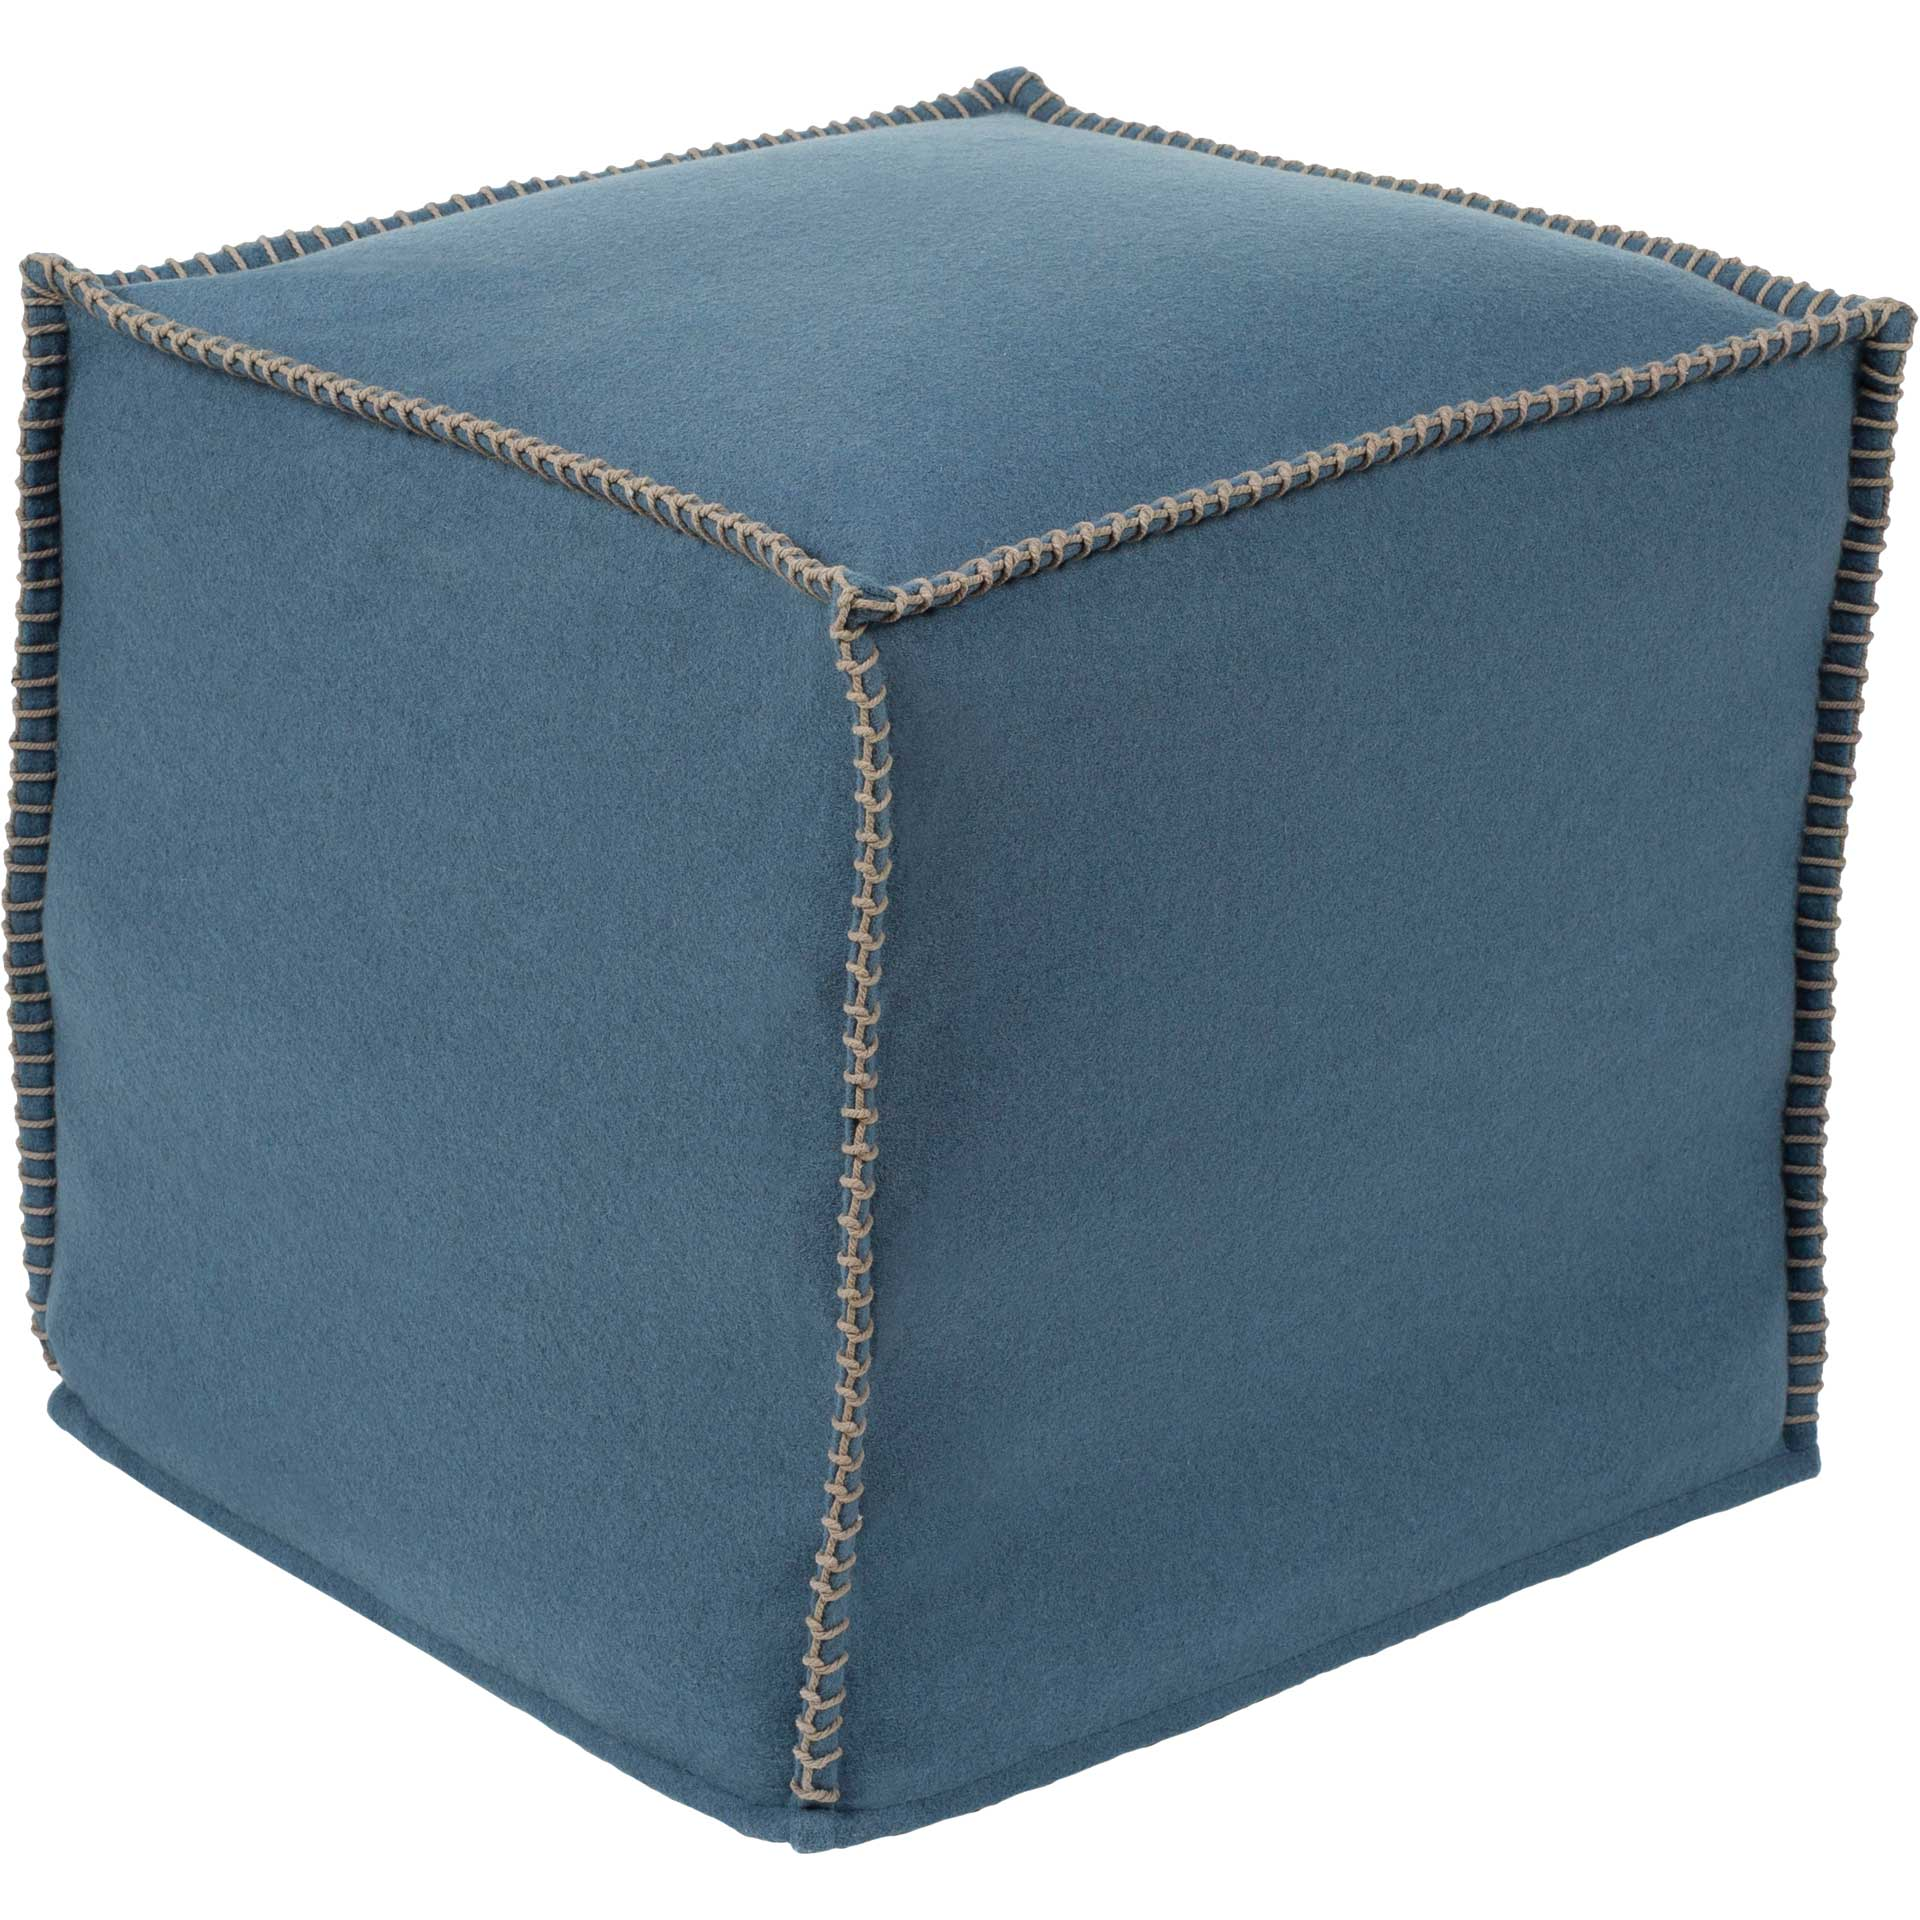 Simon Pouf Denim/Sea Foam